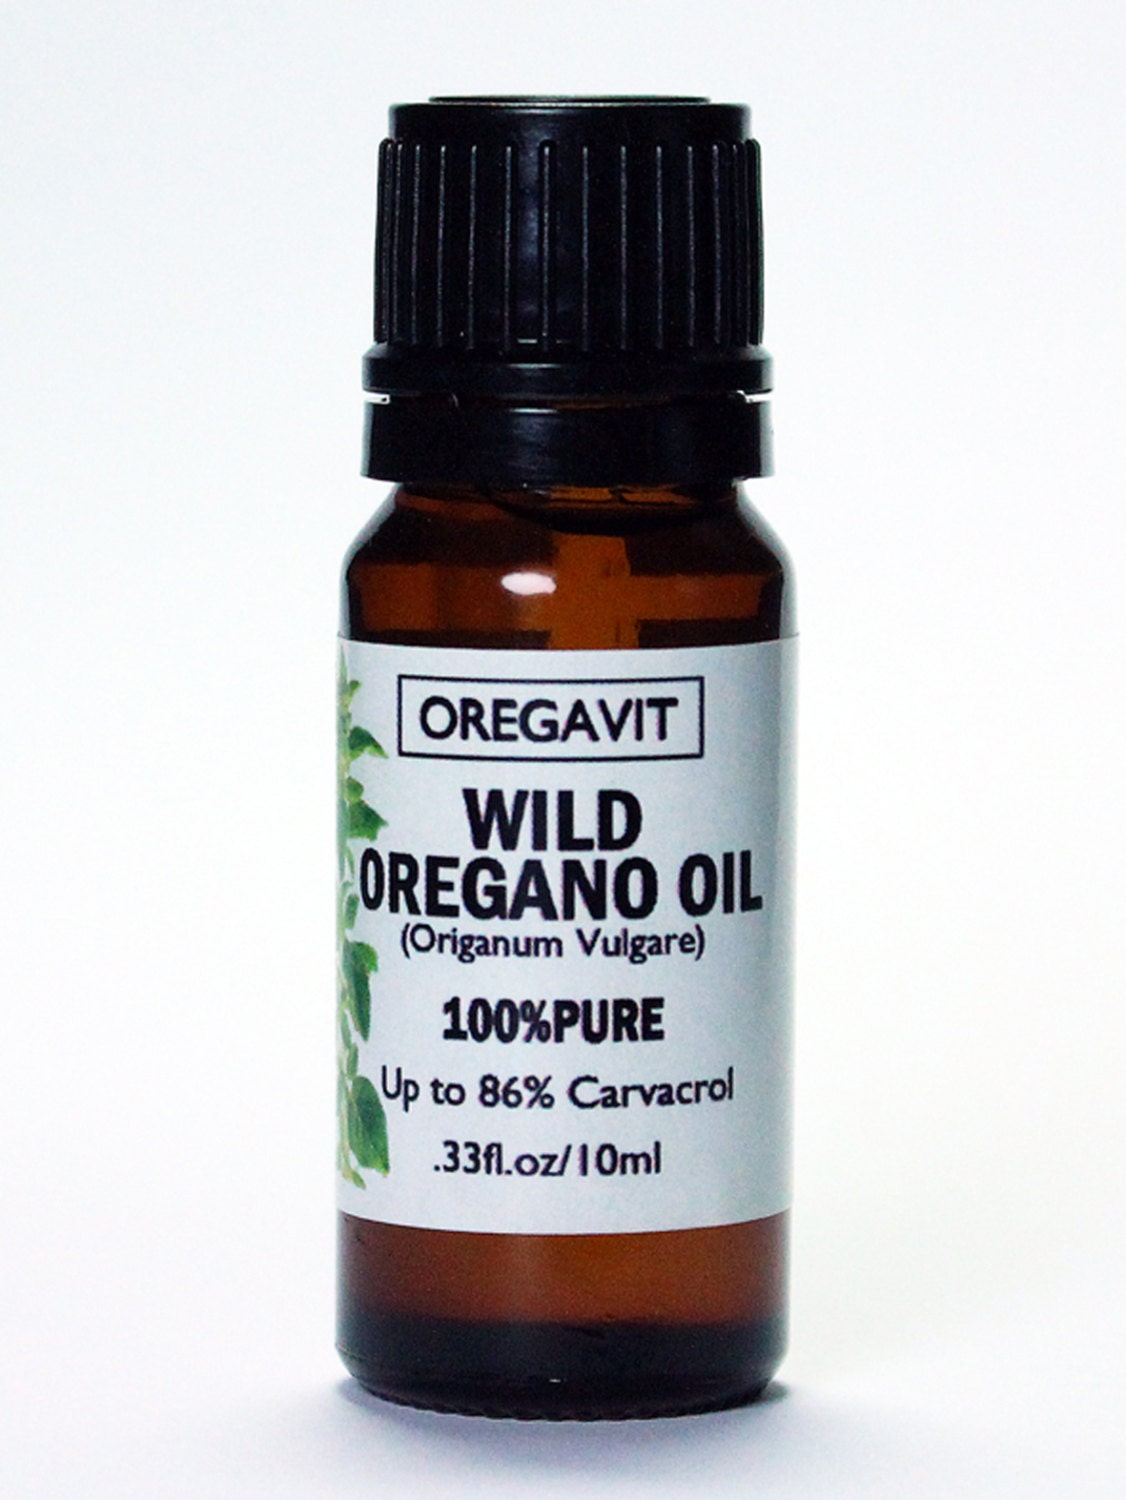 100 oil of oregano